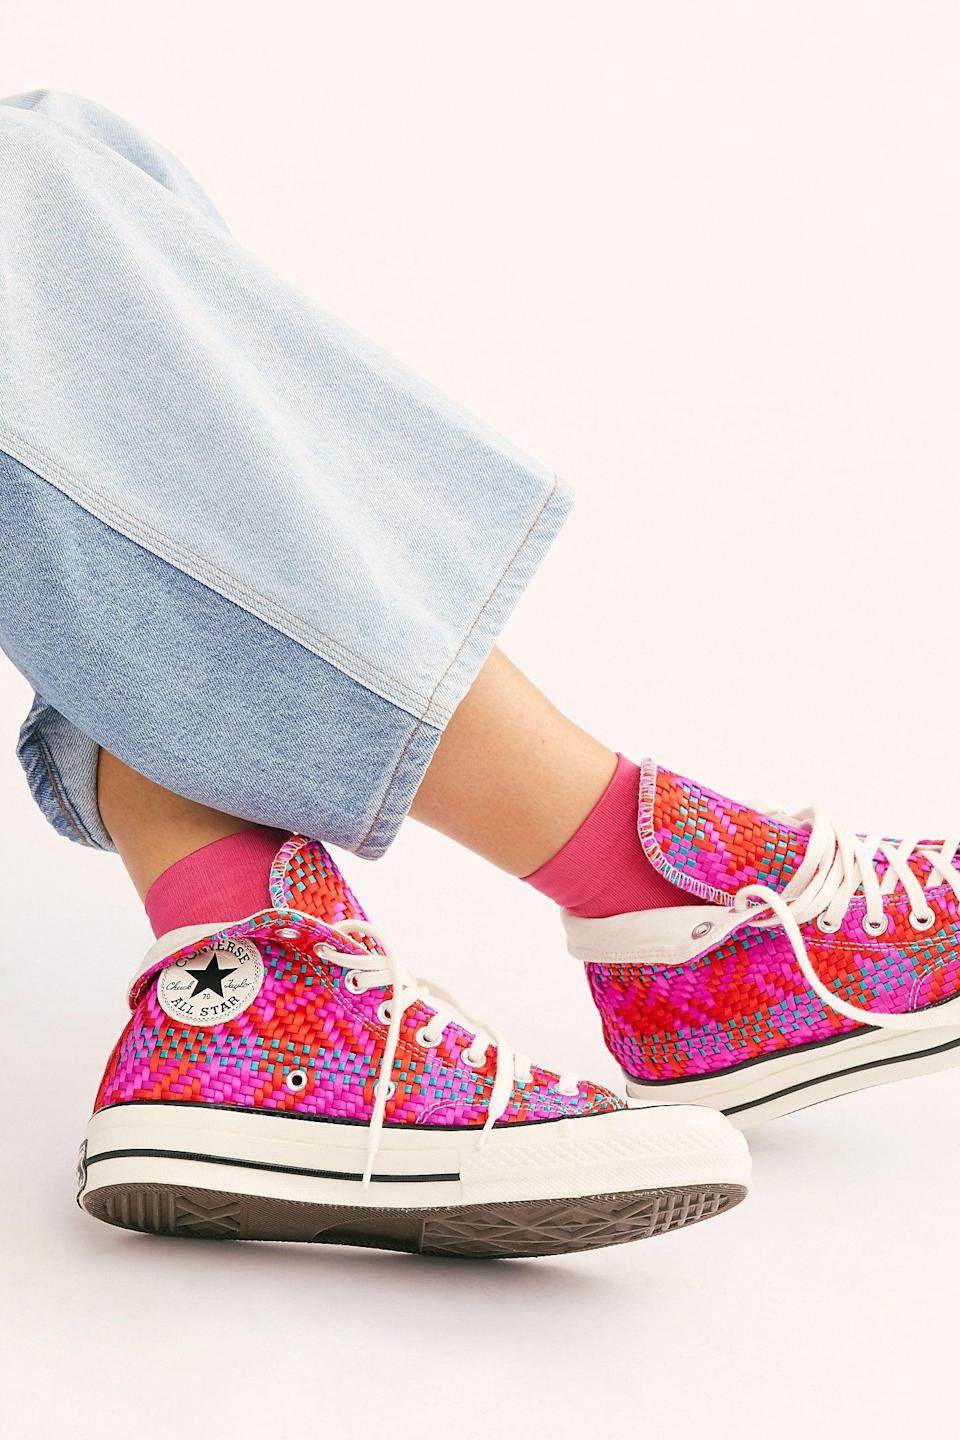 "<p><a href=""https://www.popsugar.com/buy/Chuck-70-Hi-Top-Sneakers-557508?p_name=Chuck%2070%20Hi-Top%20Sneakers&retailer=freepeople.com&pid=557508&price=90&evar1=fab%3Aus&evar9=44311634&evar98=https%3A%2F%2Fwww.popsugar.com%2Ffashion%2Fphoto-gallery%2F44311634%2Fimage%2F47375104%2FChuck-70-Hi-Top-Sneakers&list1=shopping%2Cshoes%2Csneakers%2Choliday%2Cgift%20guide%2Ceditors%20pick%2Cfashion%20gifts%2Cgifts%20for%20women&prop13=api&pdata=1"" class=""link rapid-noclick-resp"" rel=""nofollow noopener"" target=""_blank"" data-ylk=""slk:Chuck 70 Hi-Top Sneakers"">Chuck 70 Hi-Top Sneakers</a> ($90) </p> <p>""The unique spin on these Converse sneakers will make them your most cherished pair for years to come. I can't wait to wear mine with jeans and a tee."" - Macy Cate Williams, editor, Shop and Must Have</p>"